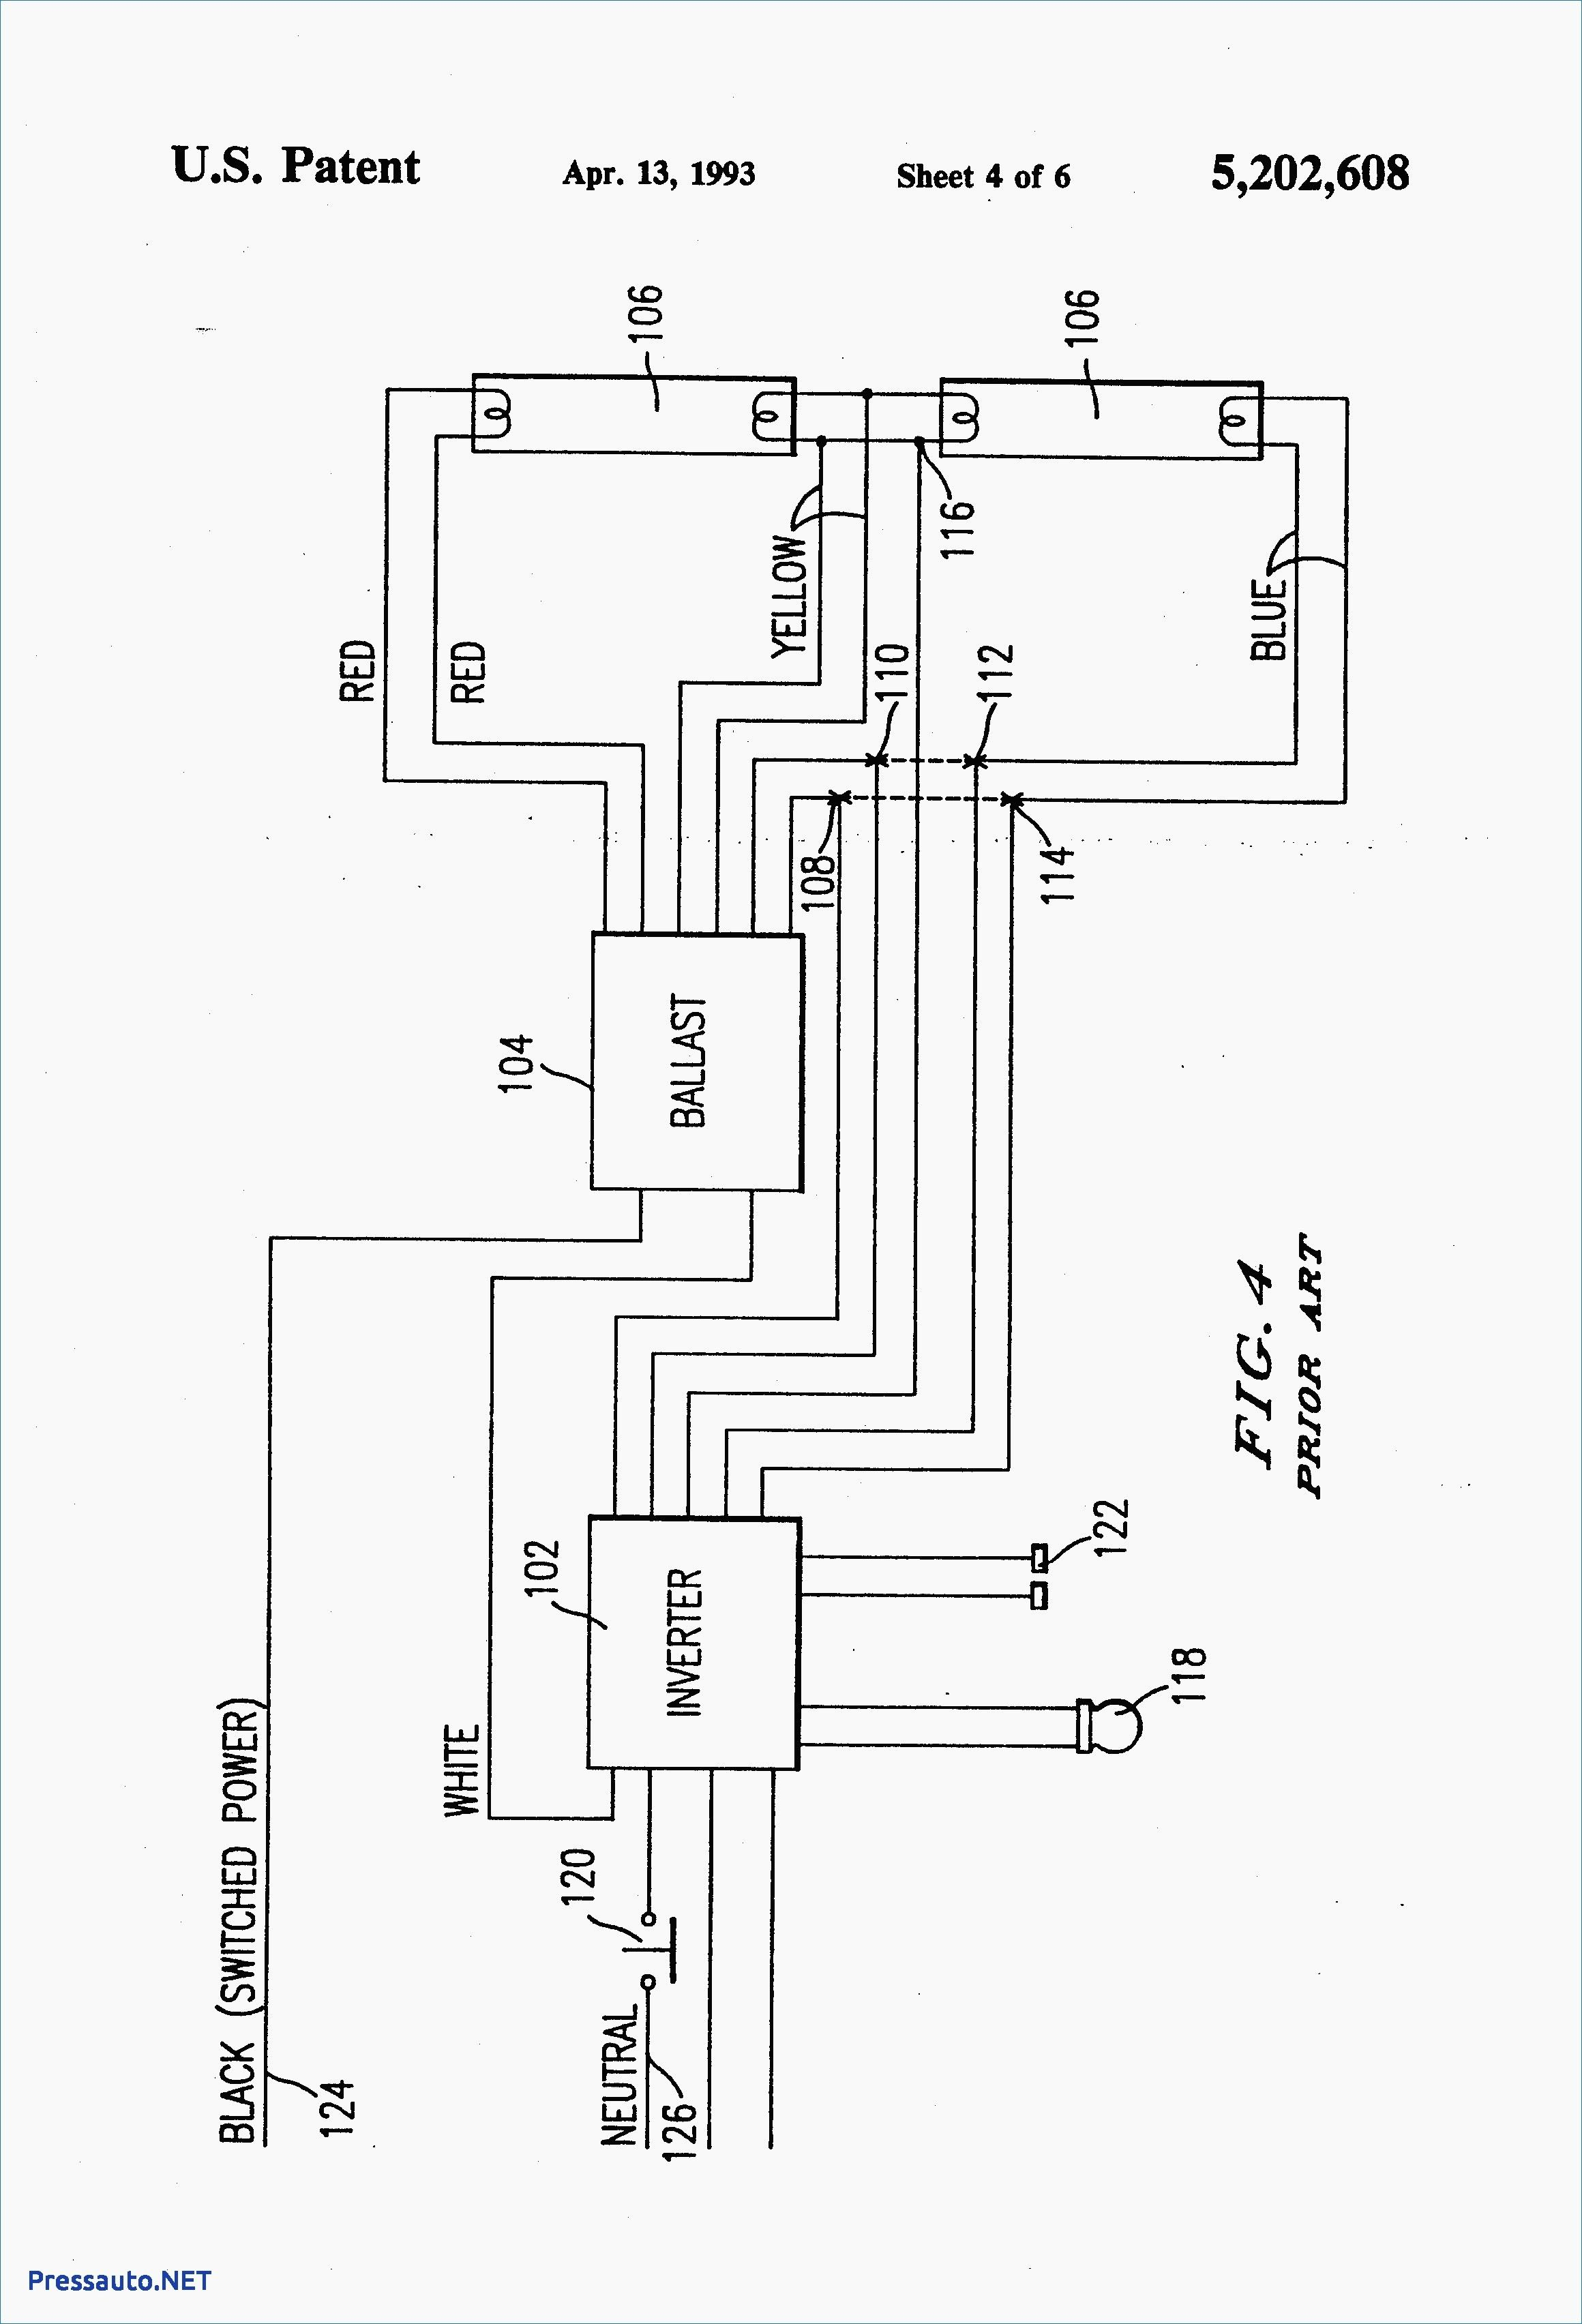 Mechanically Held Contactor Wiring Diagram from i.pinimg.com